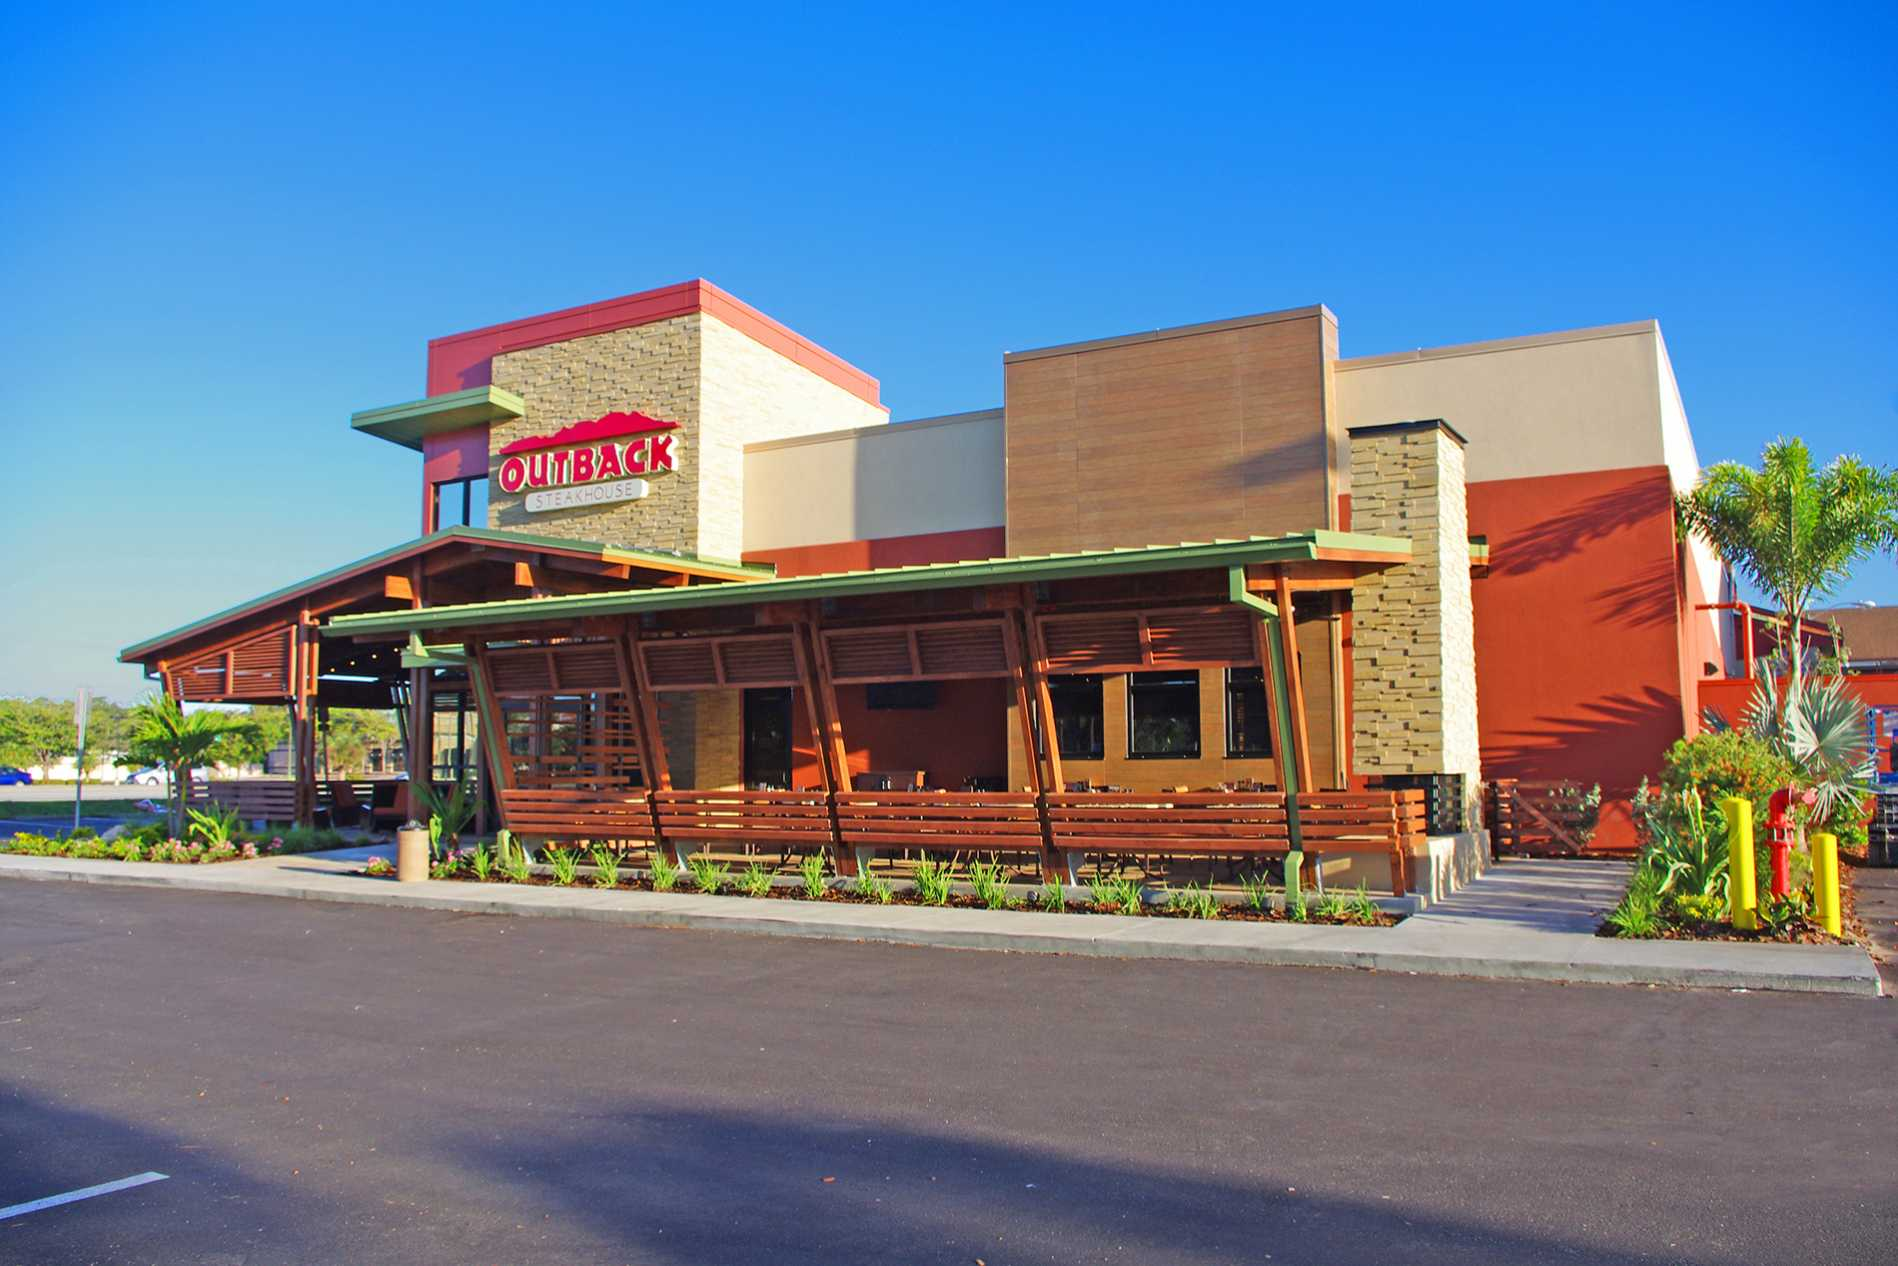 View the menu for Outback Steakhouse and restaurants in Tampa, FL. See restaurant menus, reviews, hours, photos, maps and directions.5/5(1).